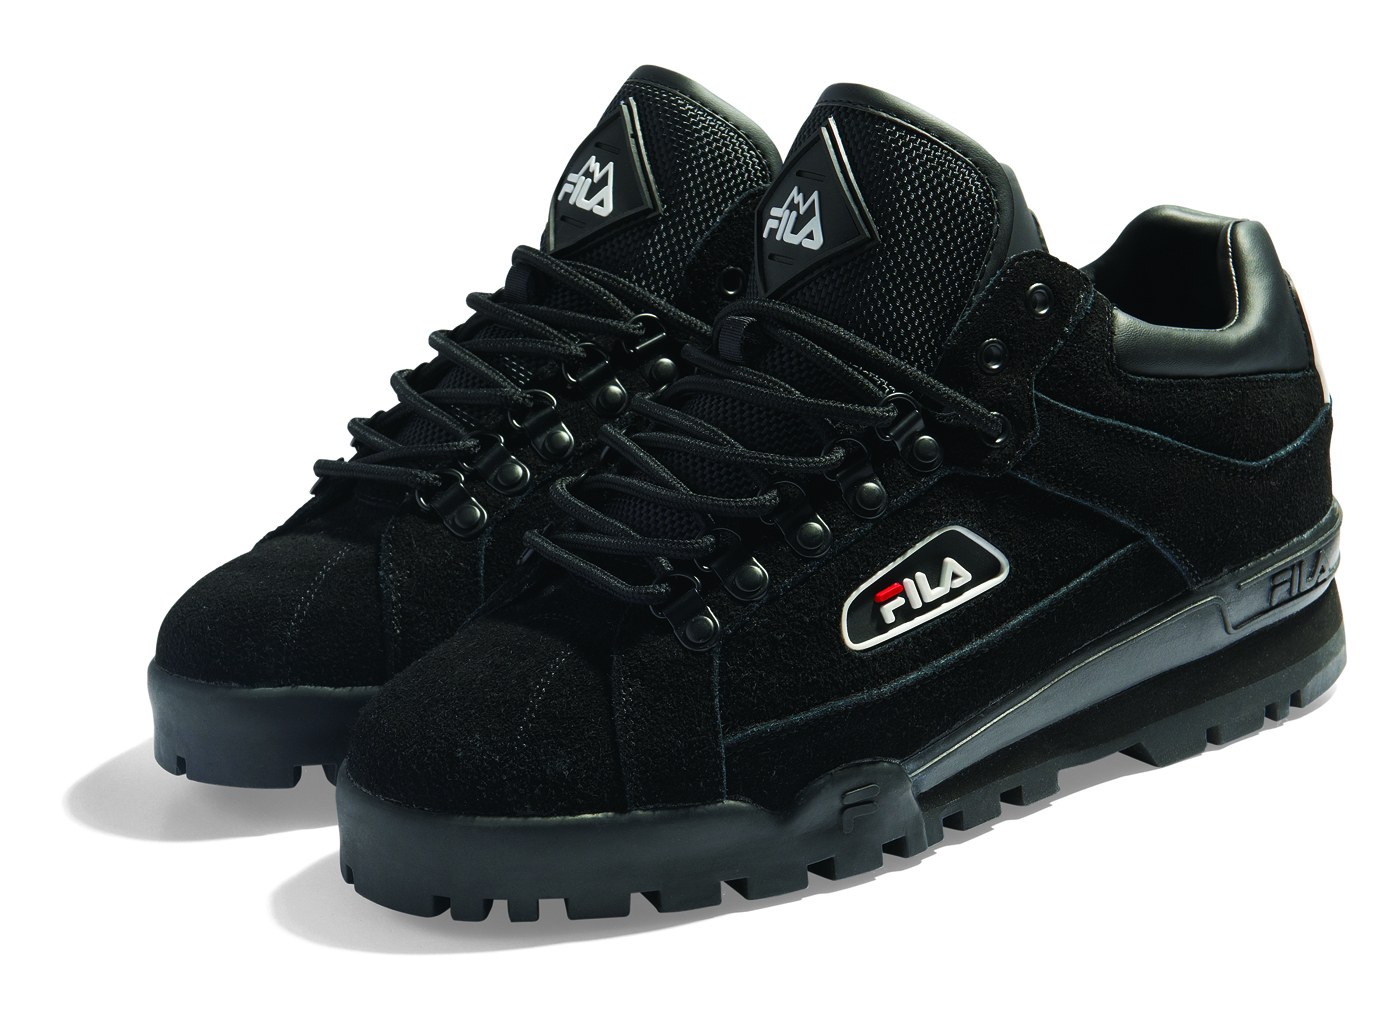 Fila and Footpatrol Re-Issue Iconic 90's Trailblazer Shoe: Two Co-Branded Limited Edition Styles ...